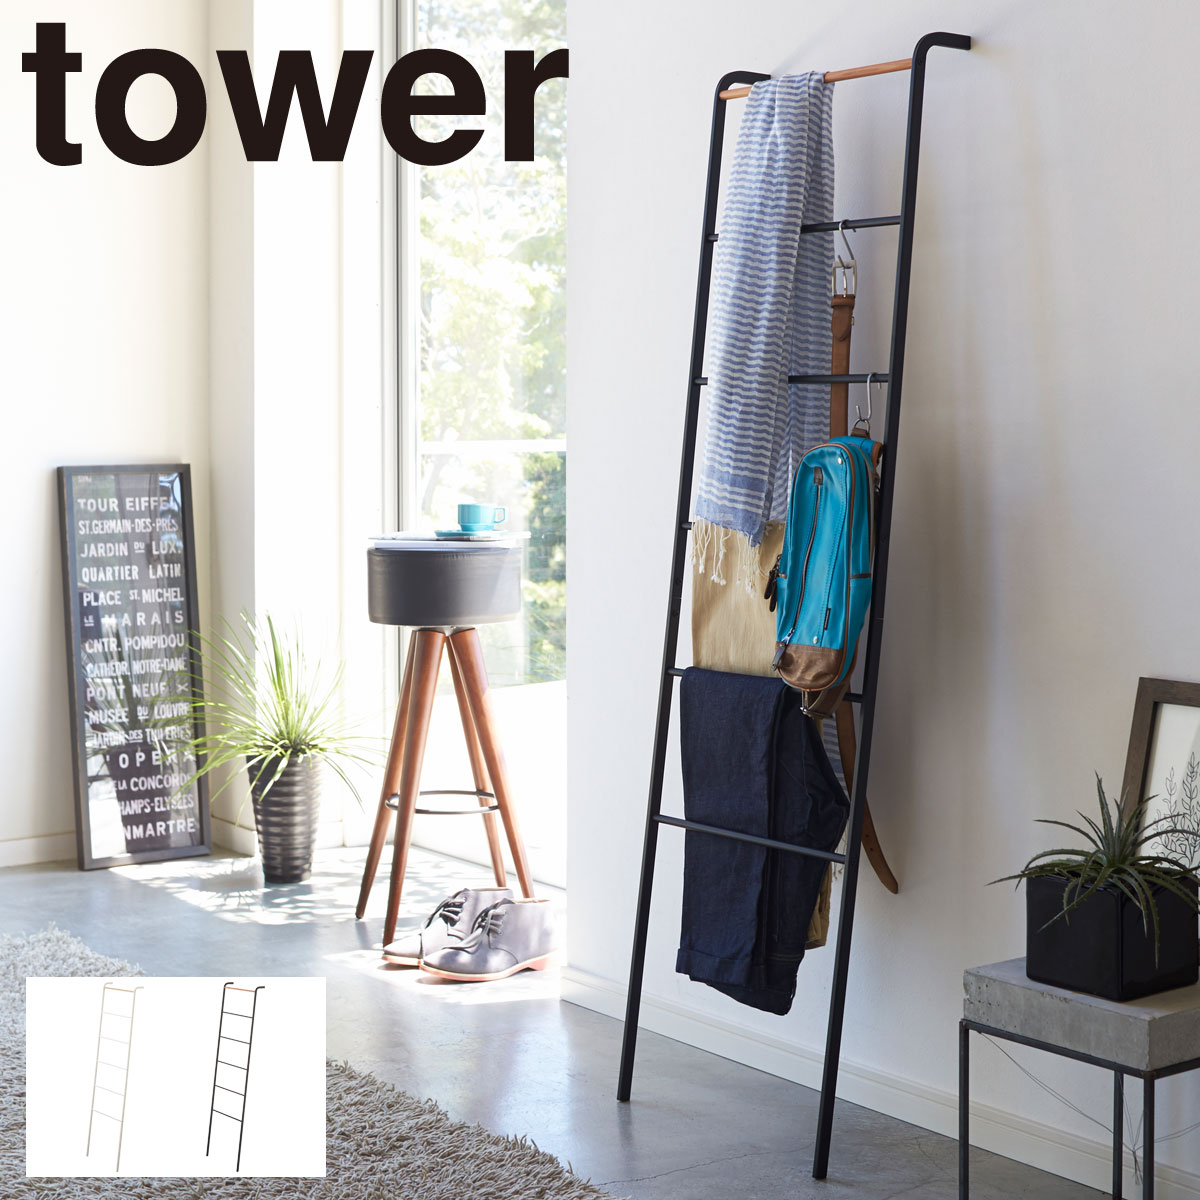 Wall Ladder Shelf Ladder Rack Ladder Shelf Ladder Hanger Tower White Black Tower Storing Wall Surface Shin Pull Iron Stylish Leaning Shelf